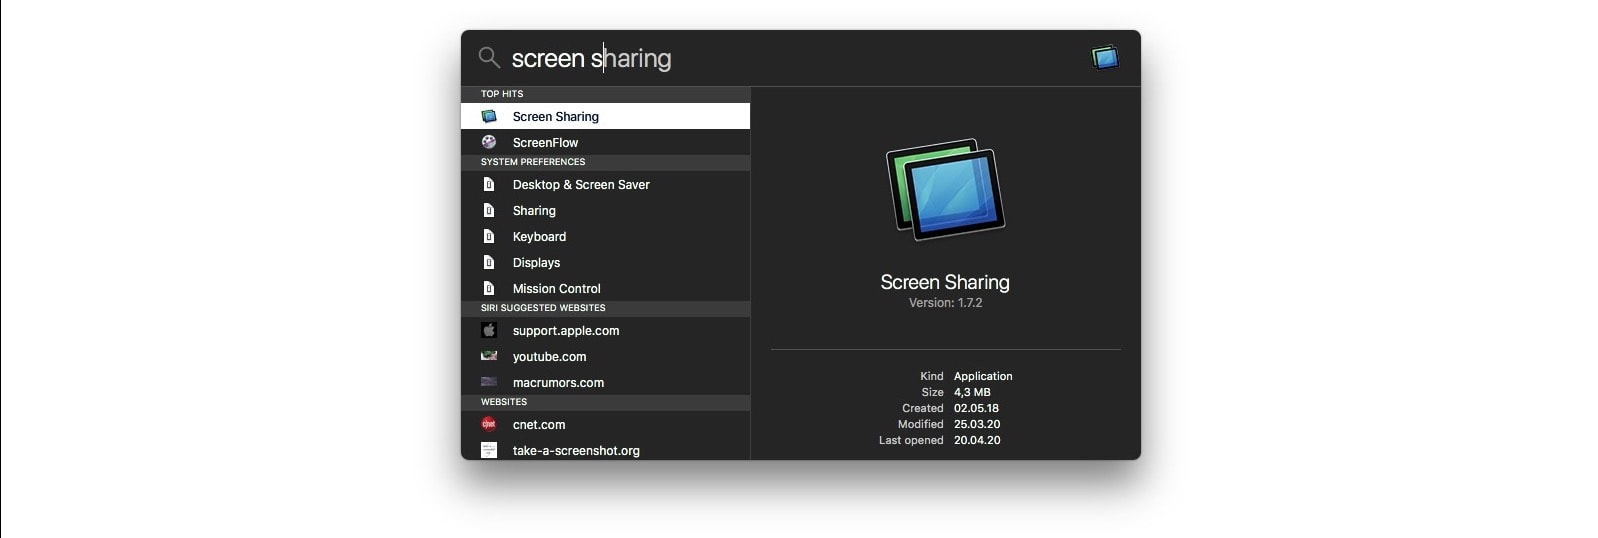 Use Spotlight to open the Screen Sharing application on your Mac.